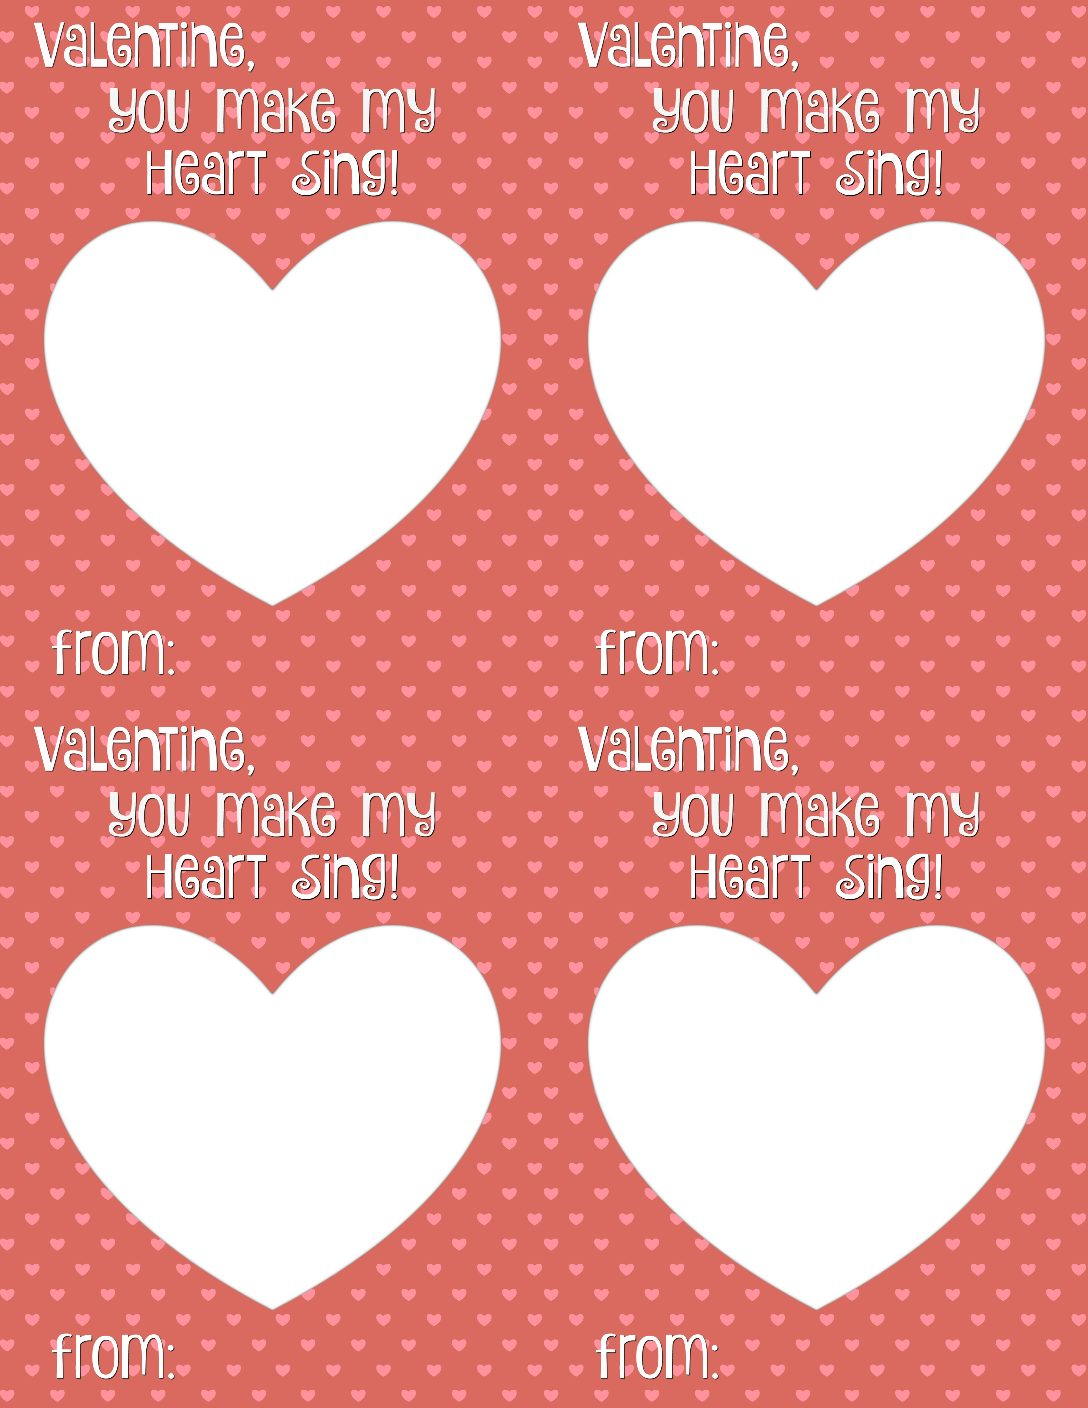 photo relating to Valentine Printable identify Oneself Produce My Middle Sing Valentine Card Printable - Smashed